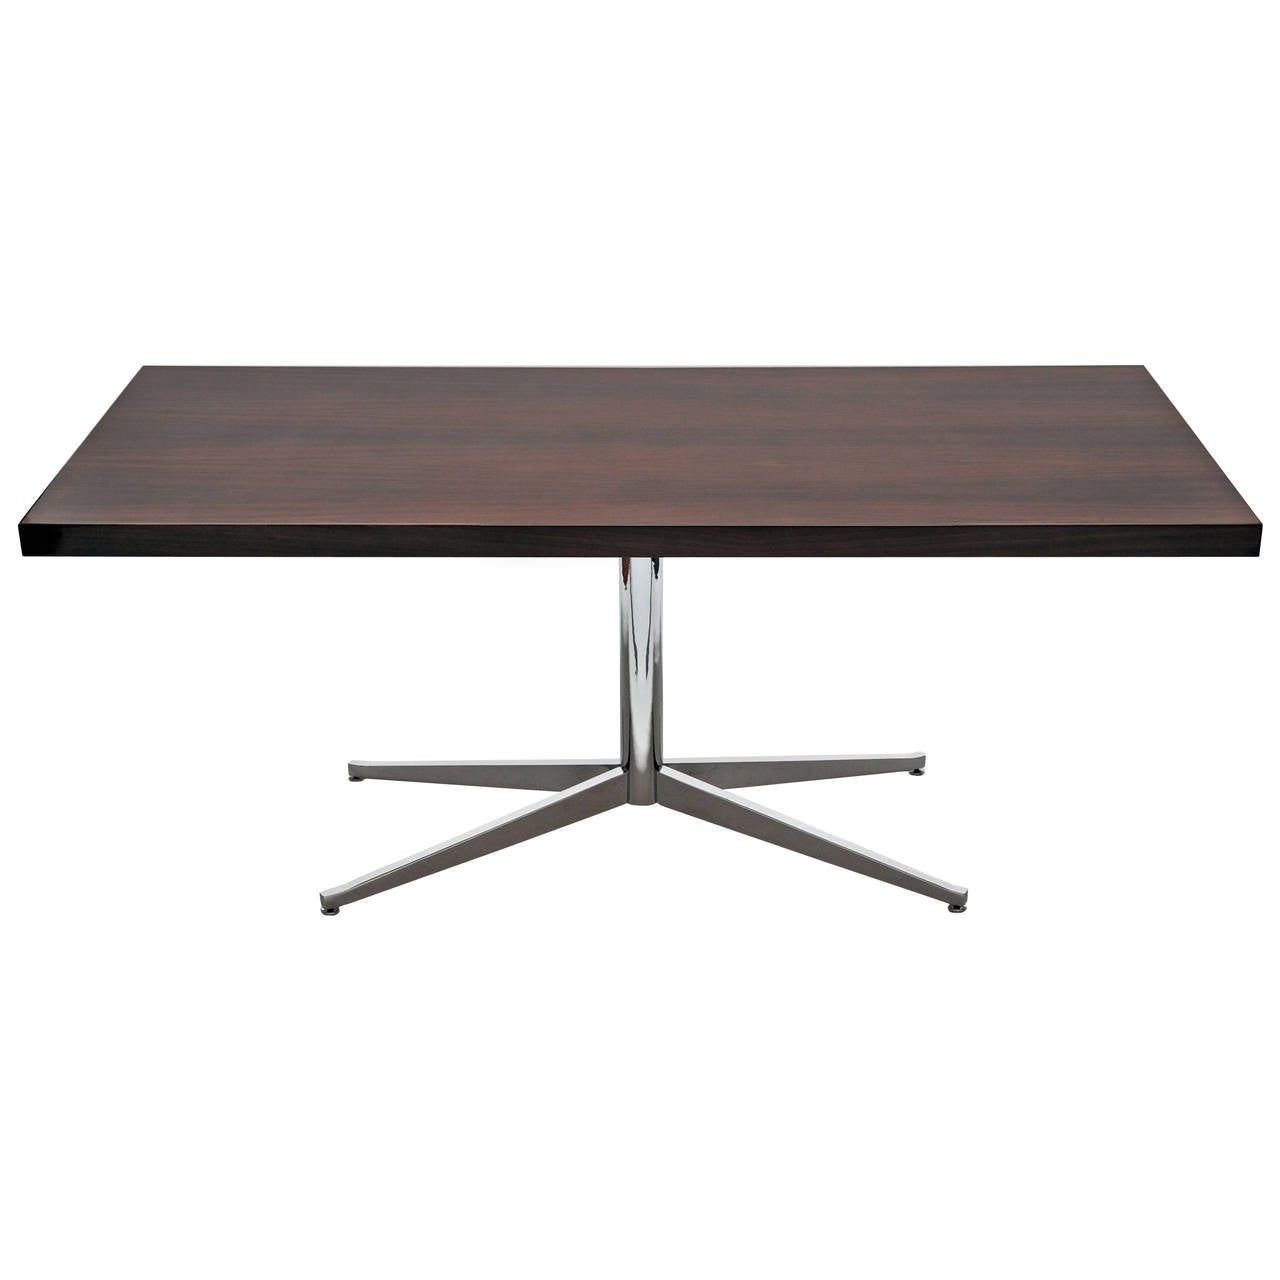 Florence knoll table or desk at 1stdibs - Archives departementales 33 tables decennales ...